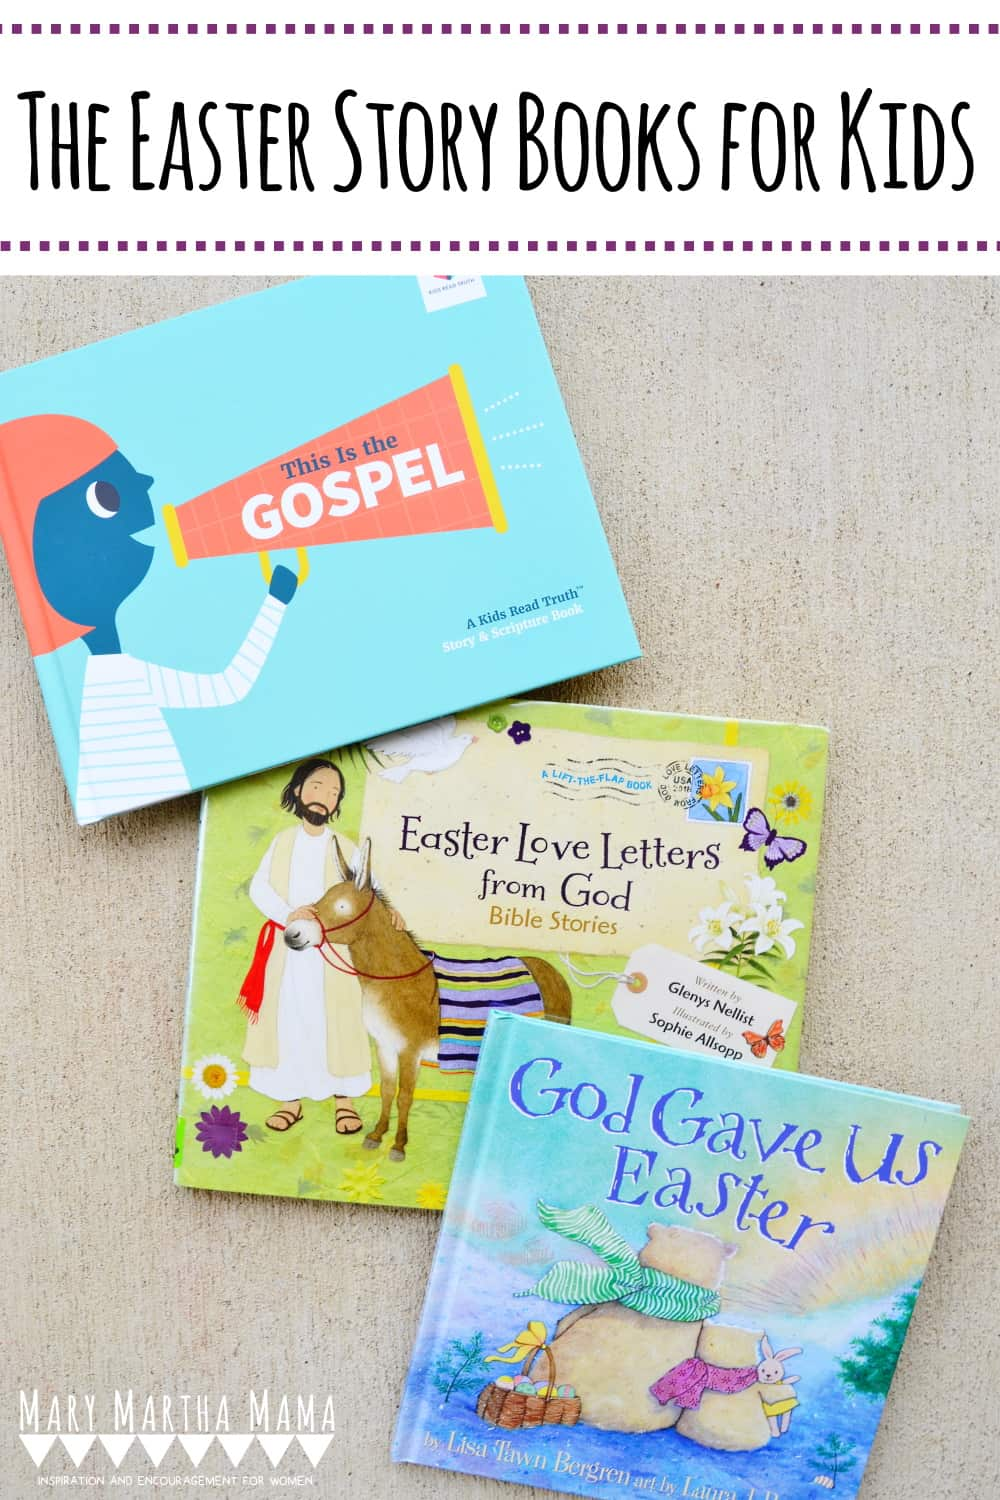 The Easter Story Books for Kids- The books on this list all help kids learn the story of the Easter story from the Bible.